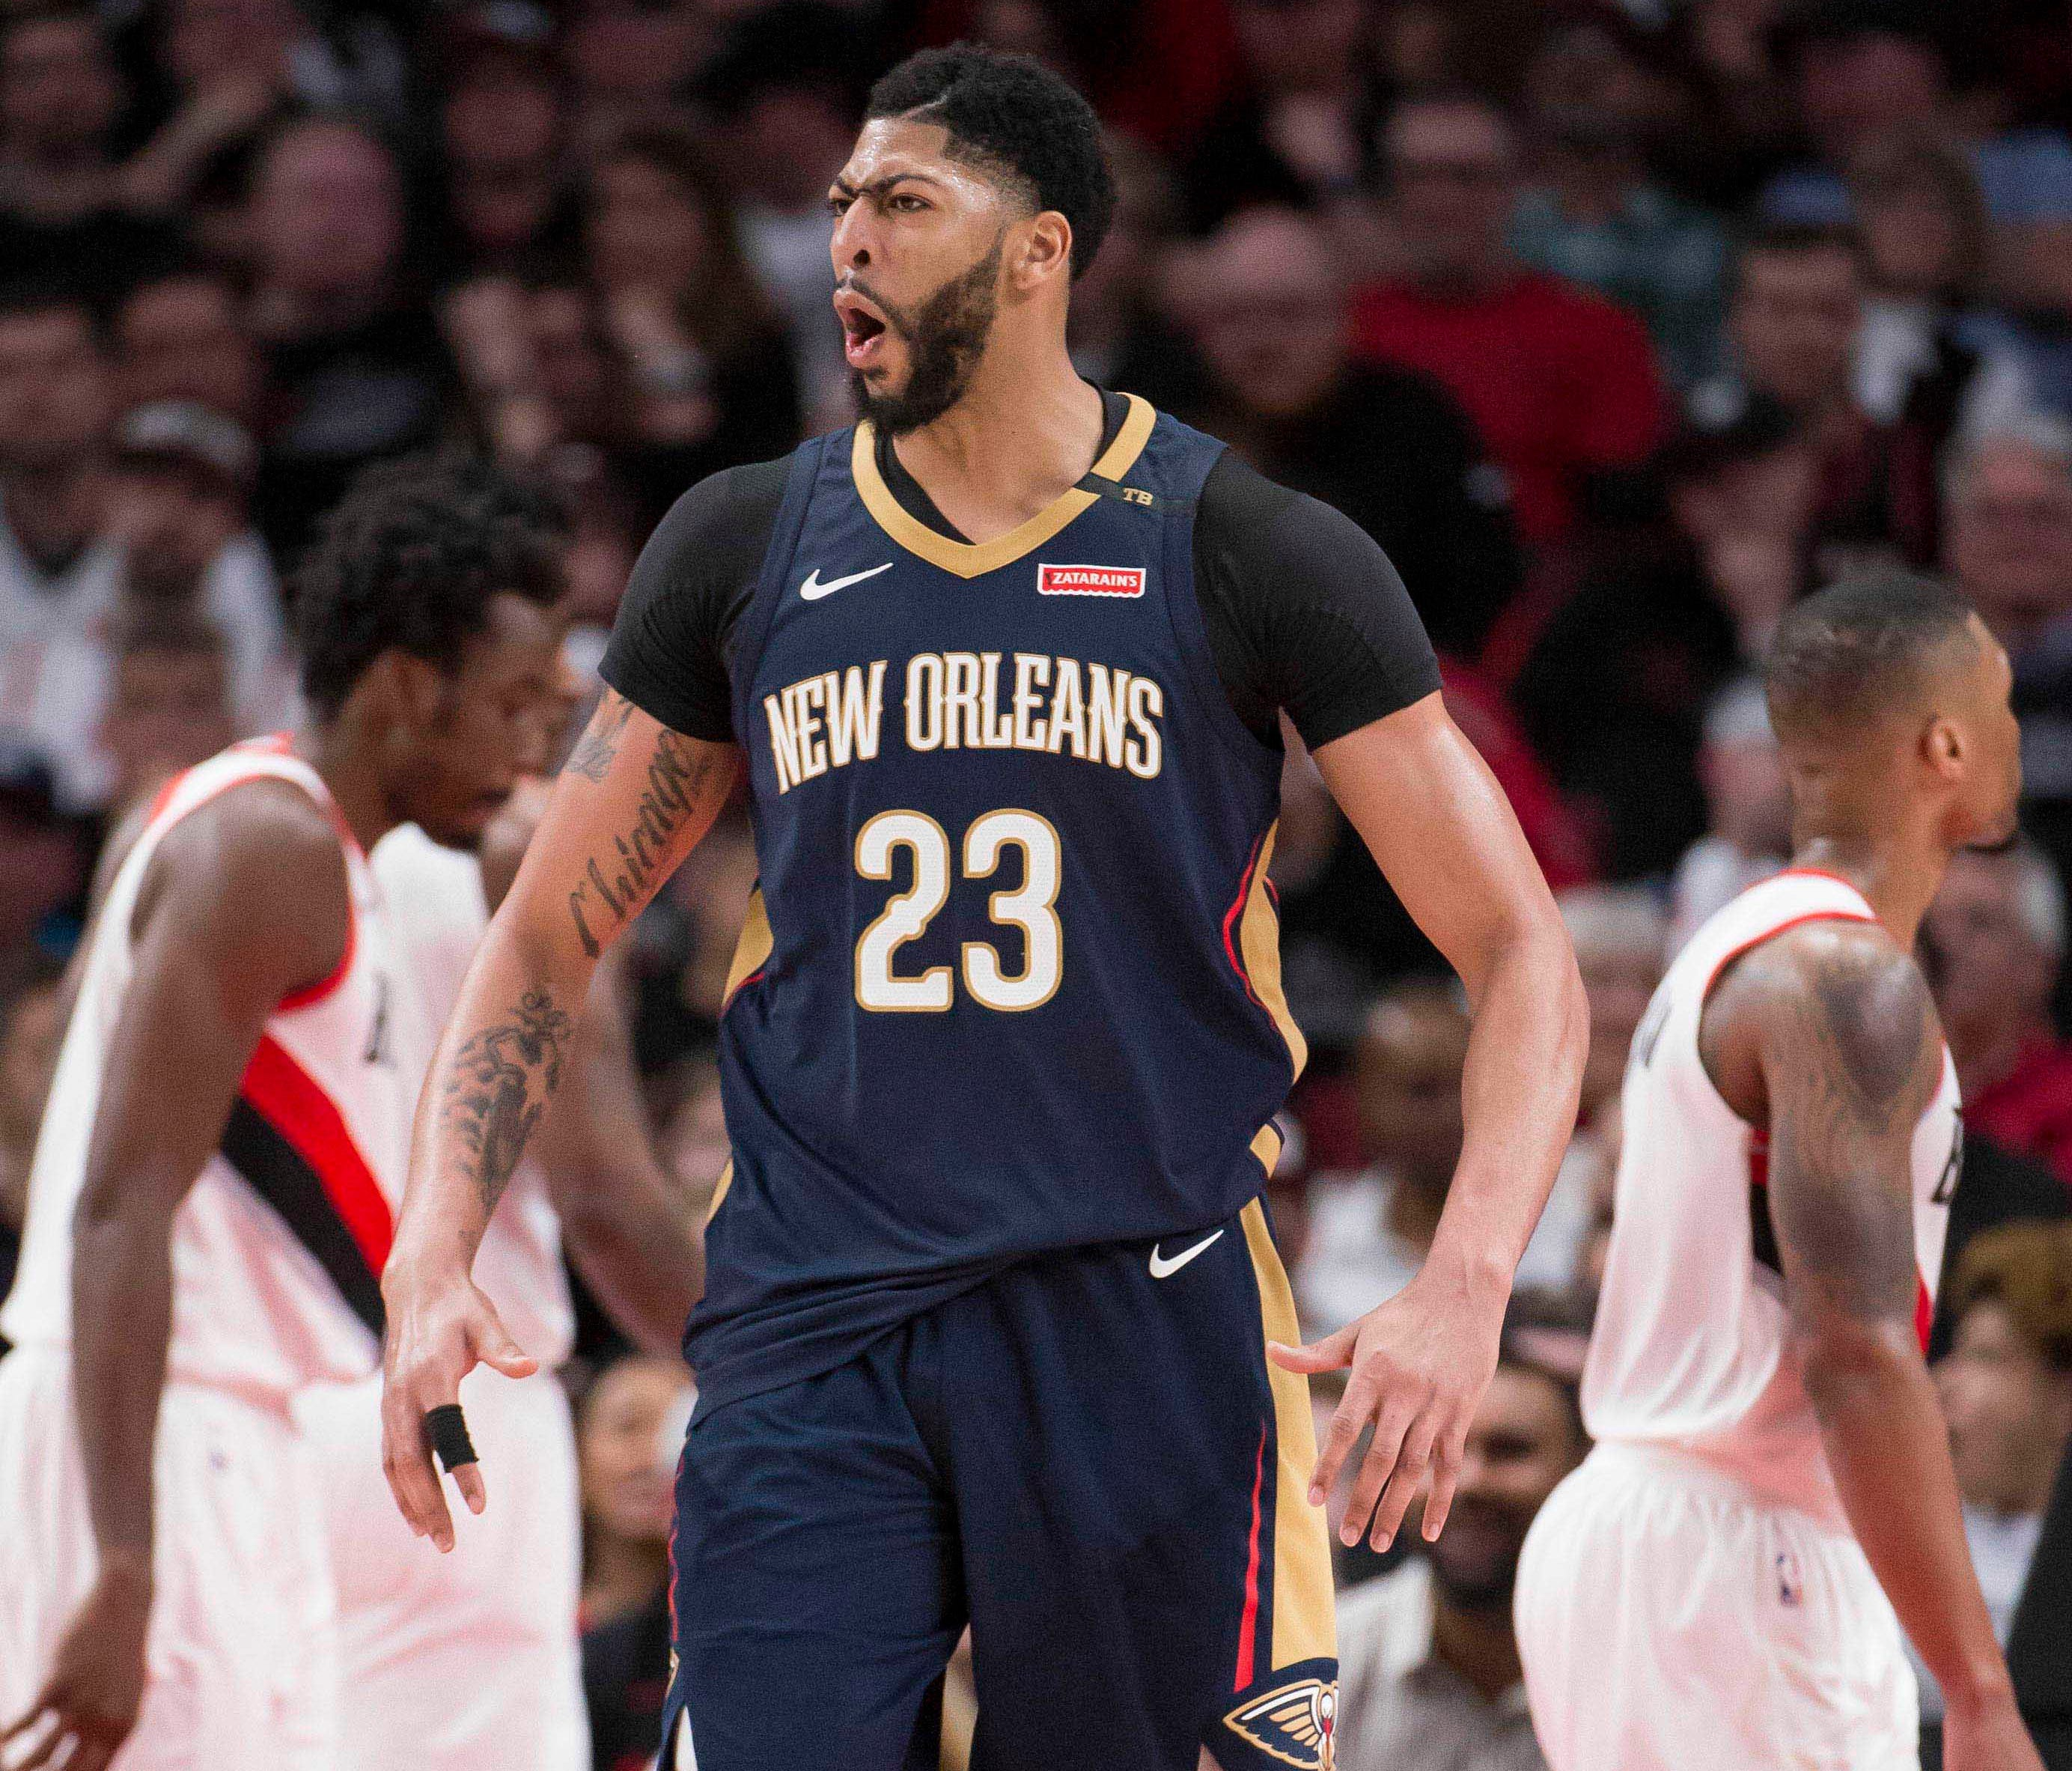 Anthony Davis celebrates after scoring in the Pelicans' Game 1 win over the Trail Blazers.